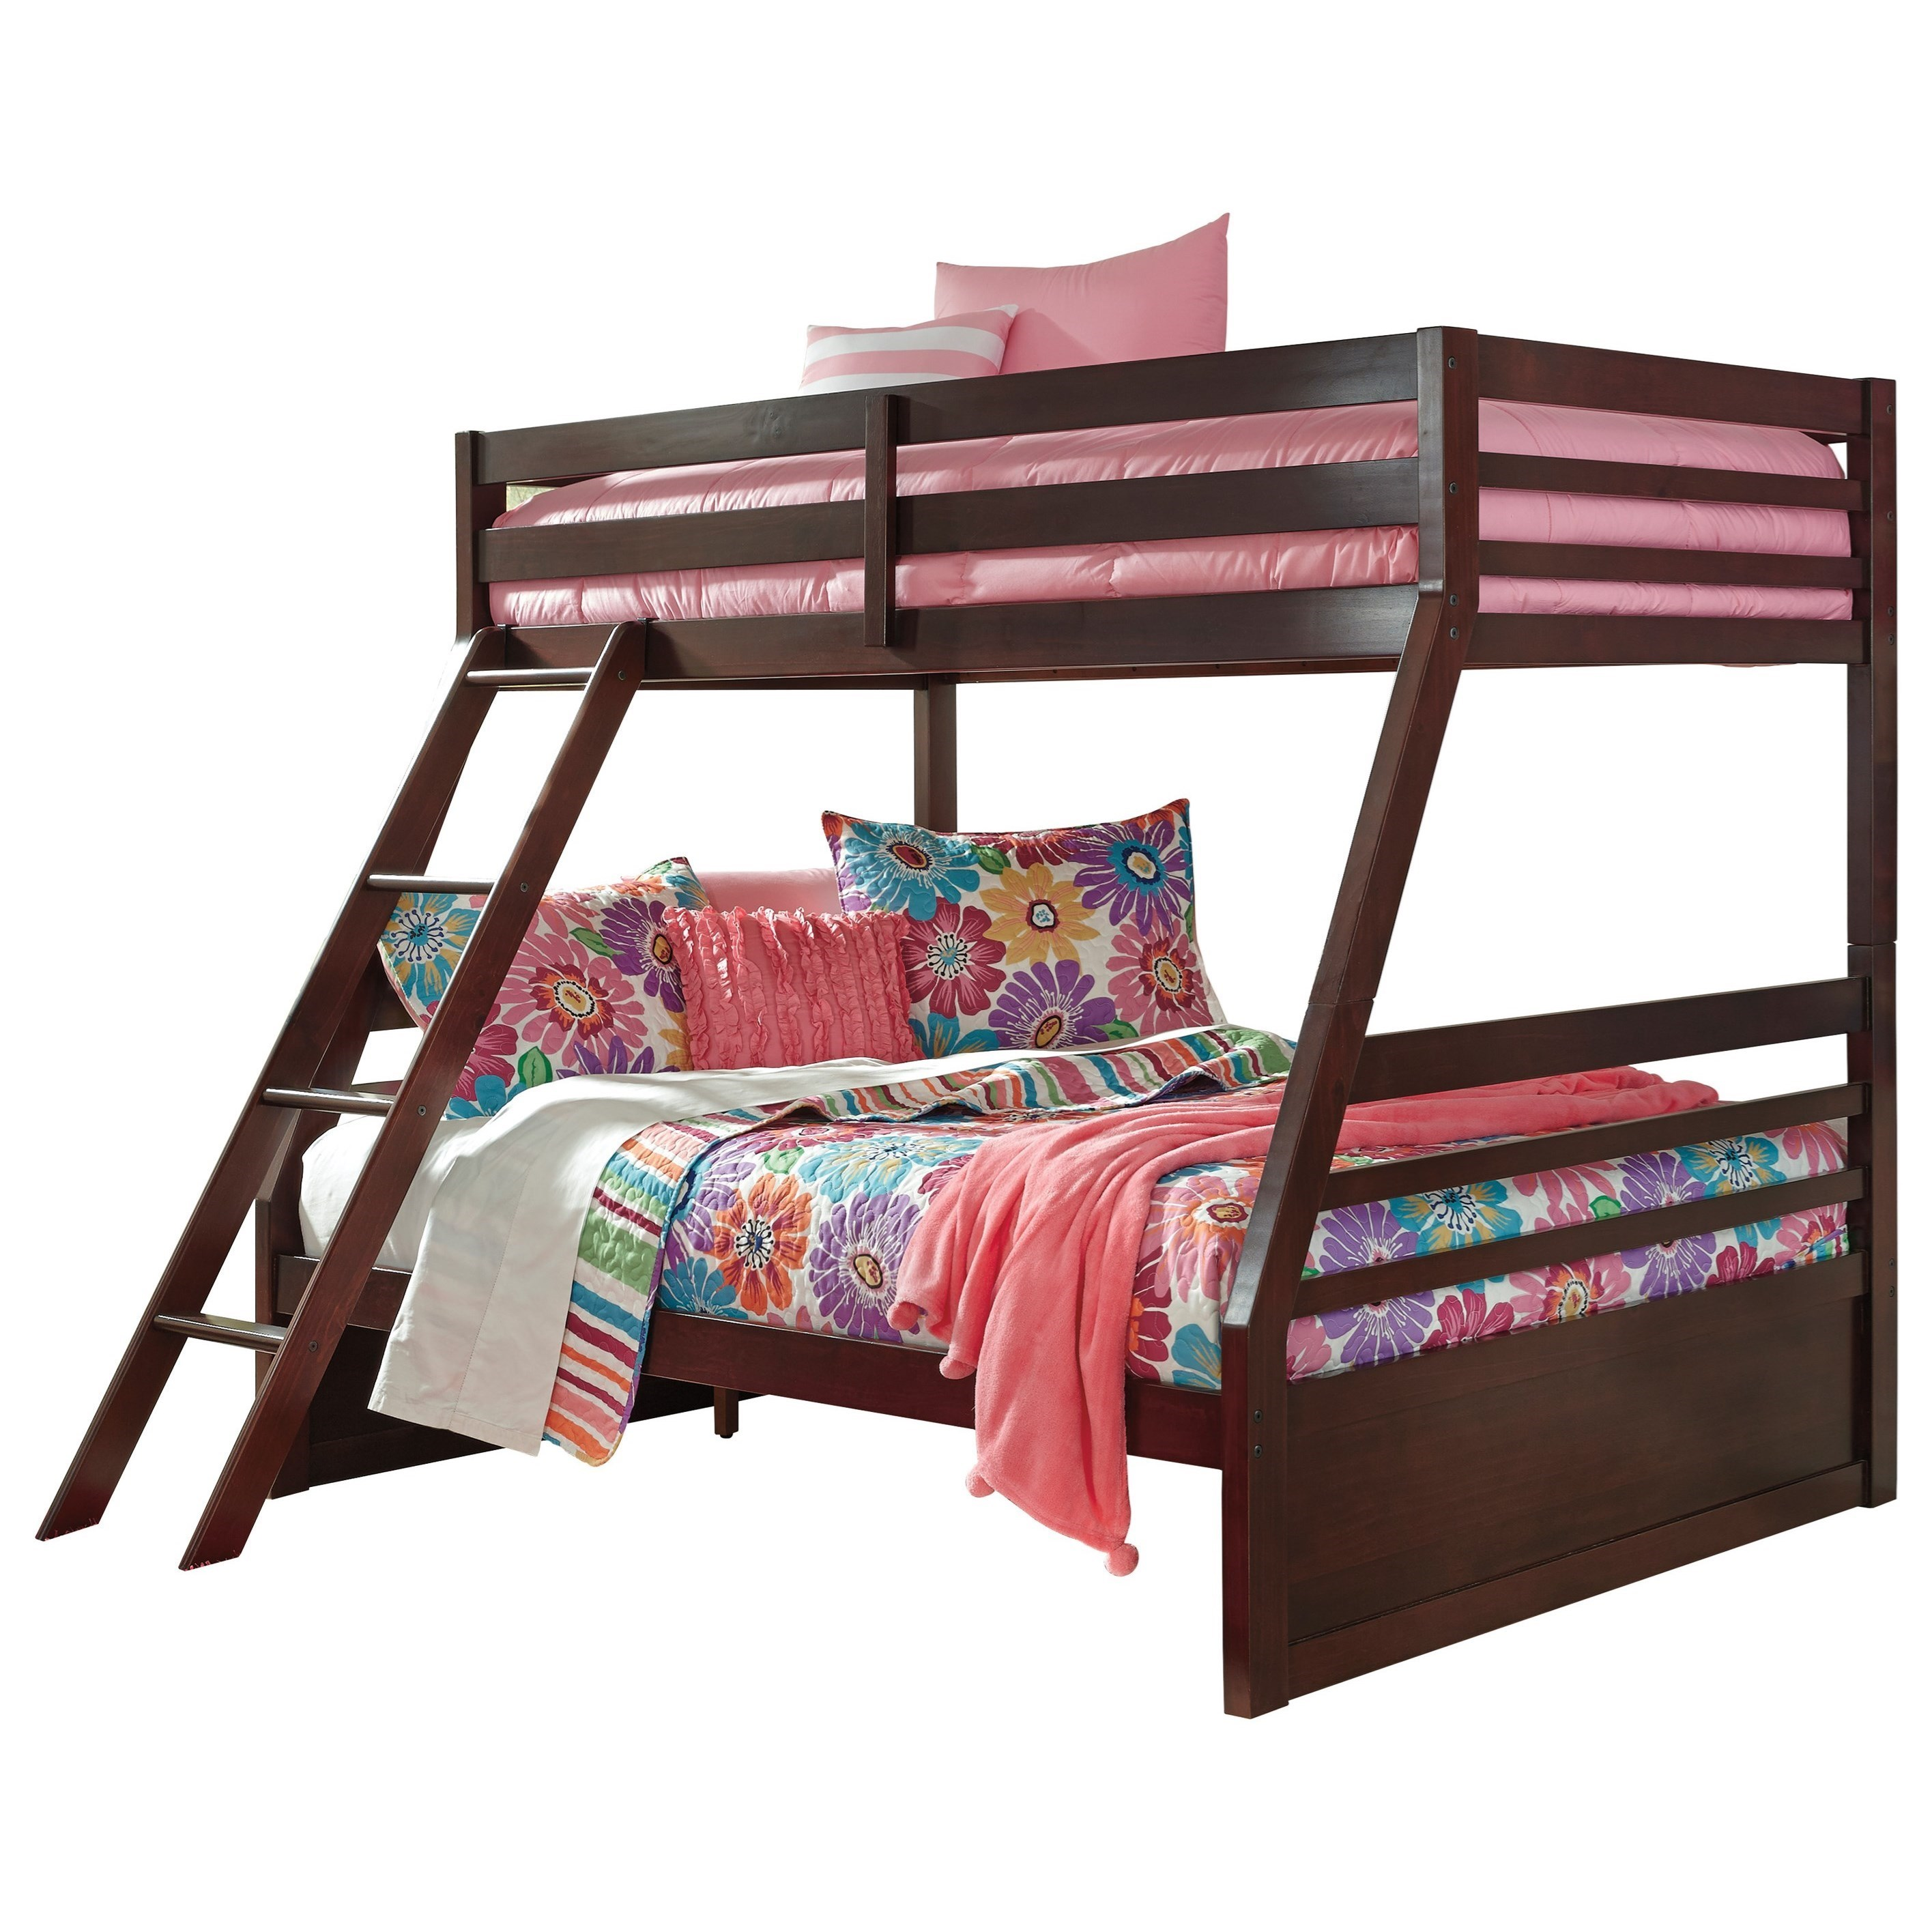 Signature Design By Ashley Halanton Solid Pine Twin/Full Bunk Bed    Household Furniture   Bunk Beds